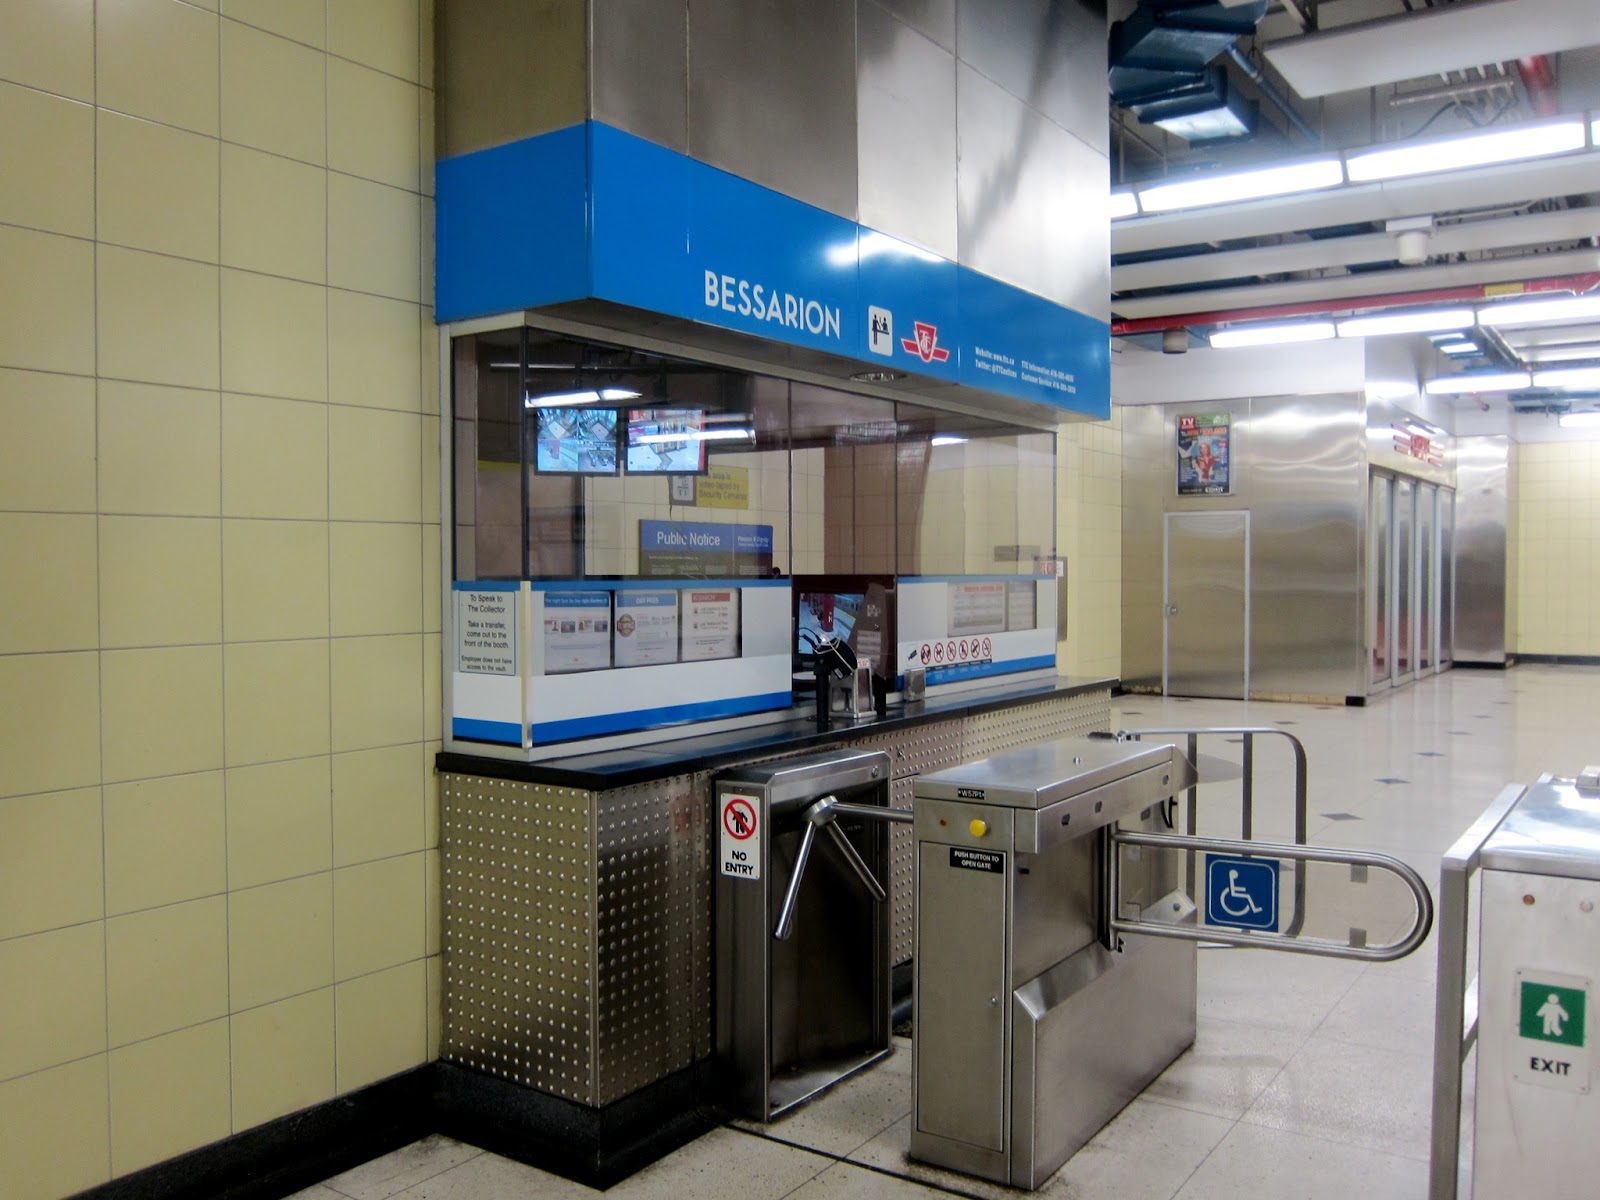 Bessarion station fare collector booth